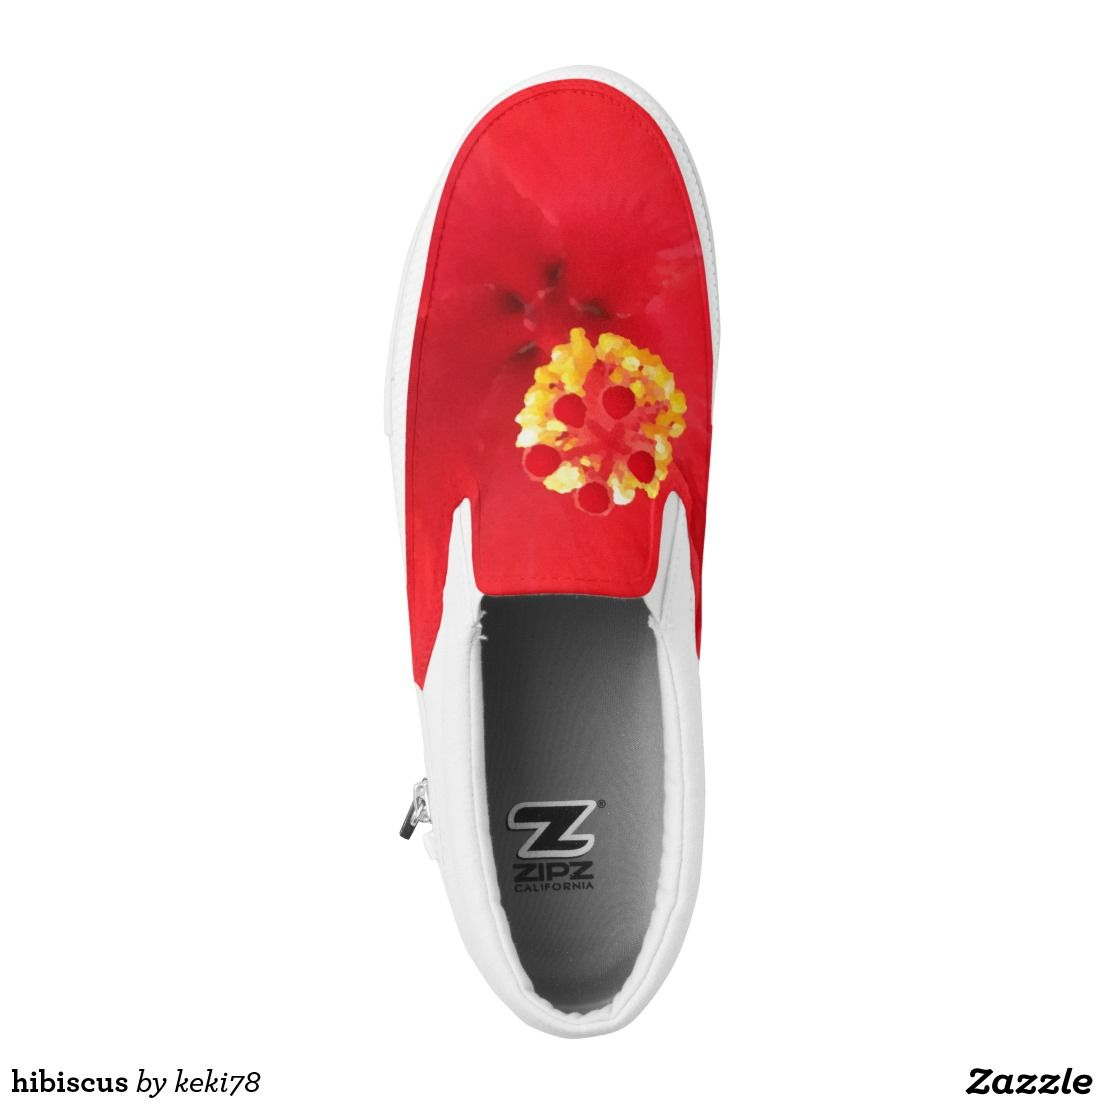 hibiscus printed shoes